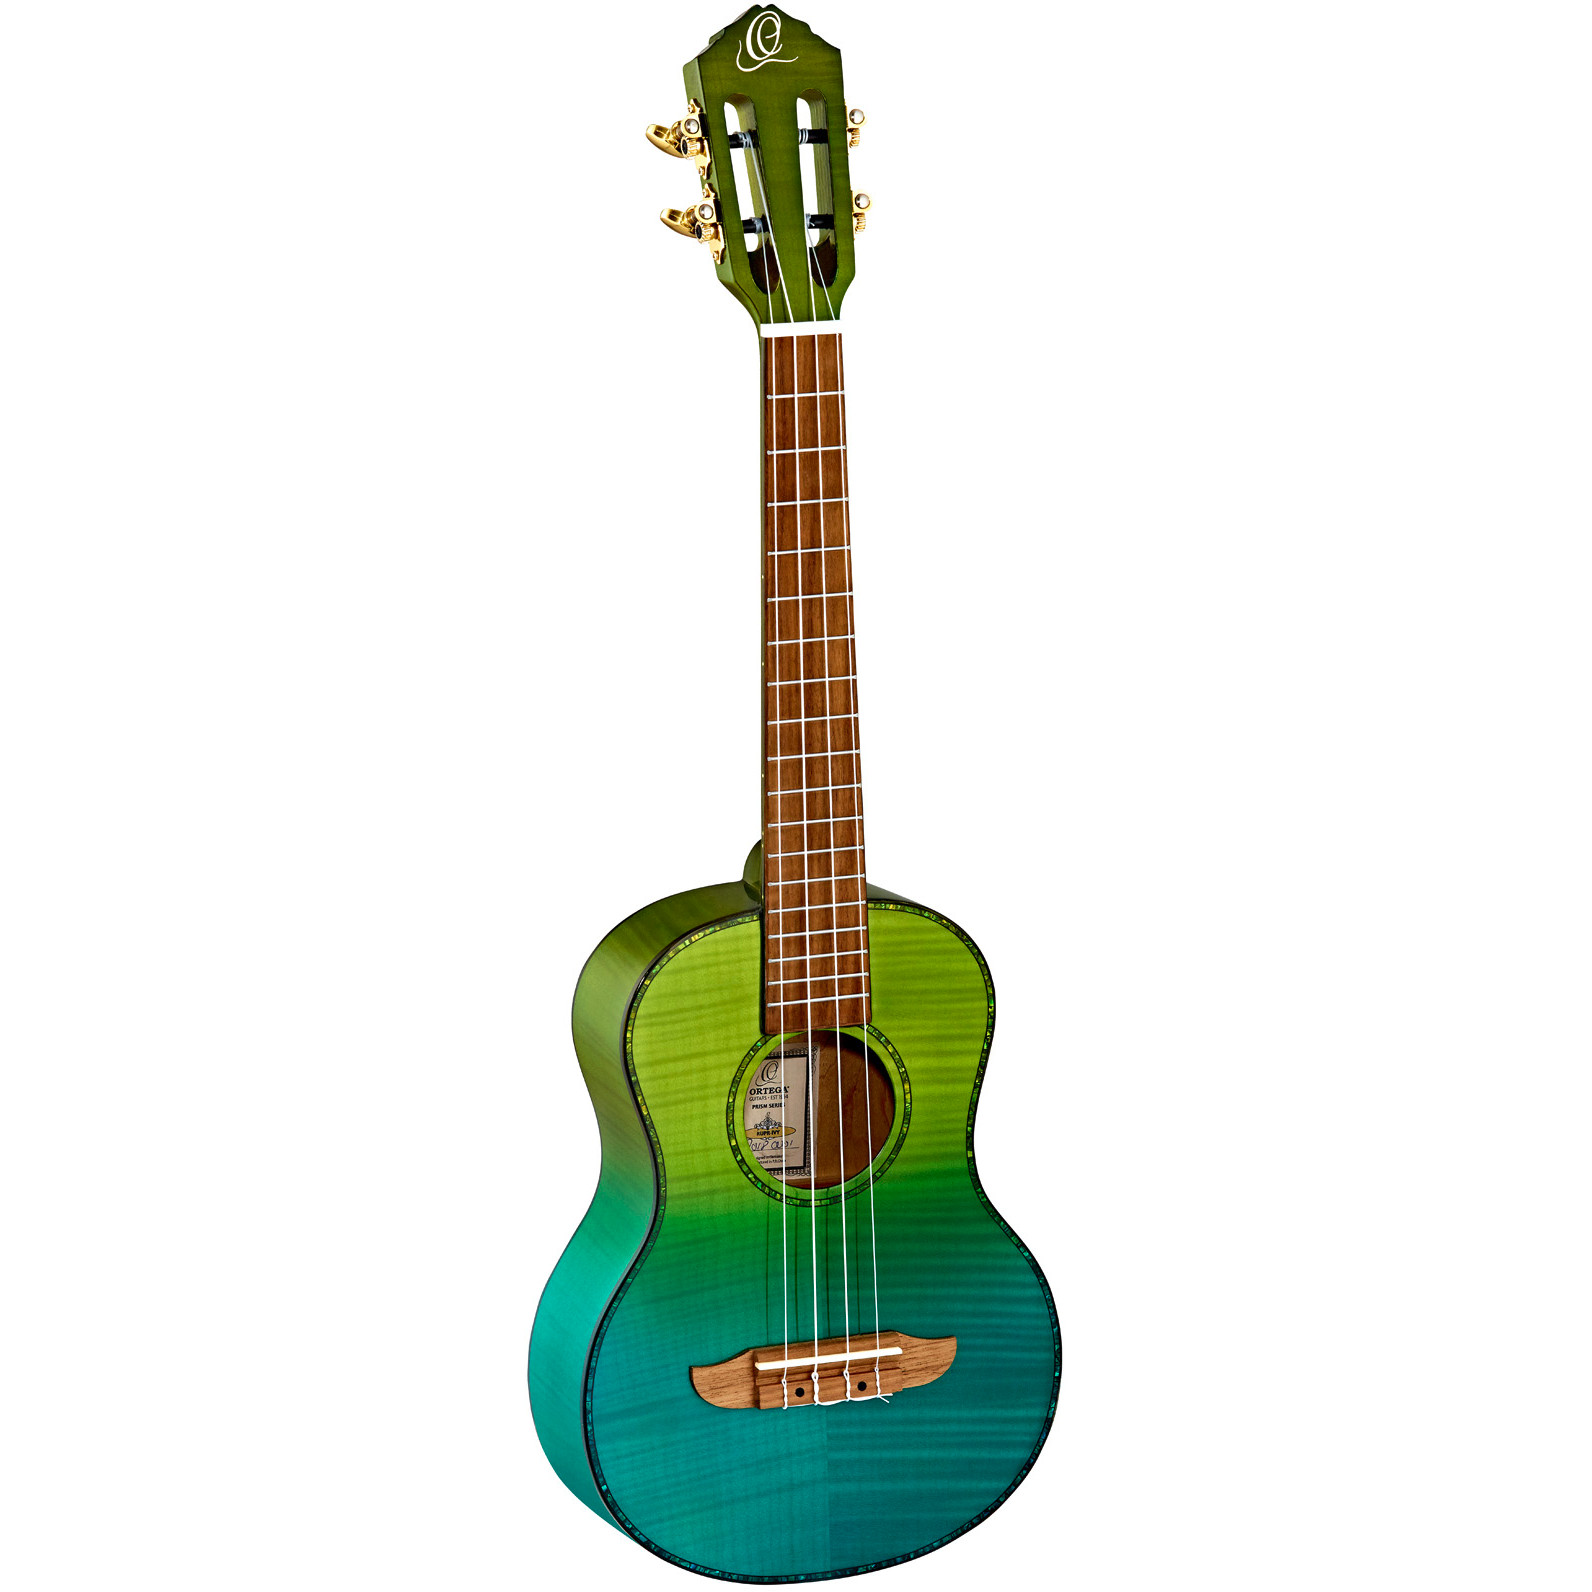 Ortega Prism series RUPR IVY tenor ukulele with bag